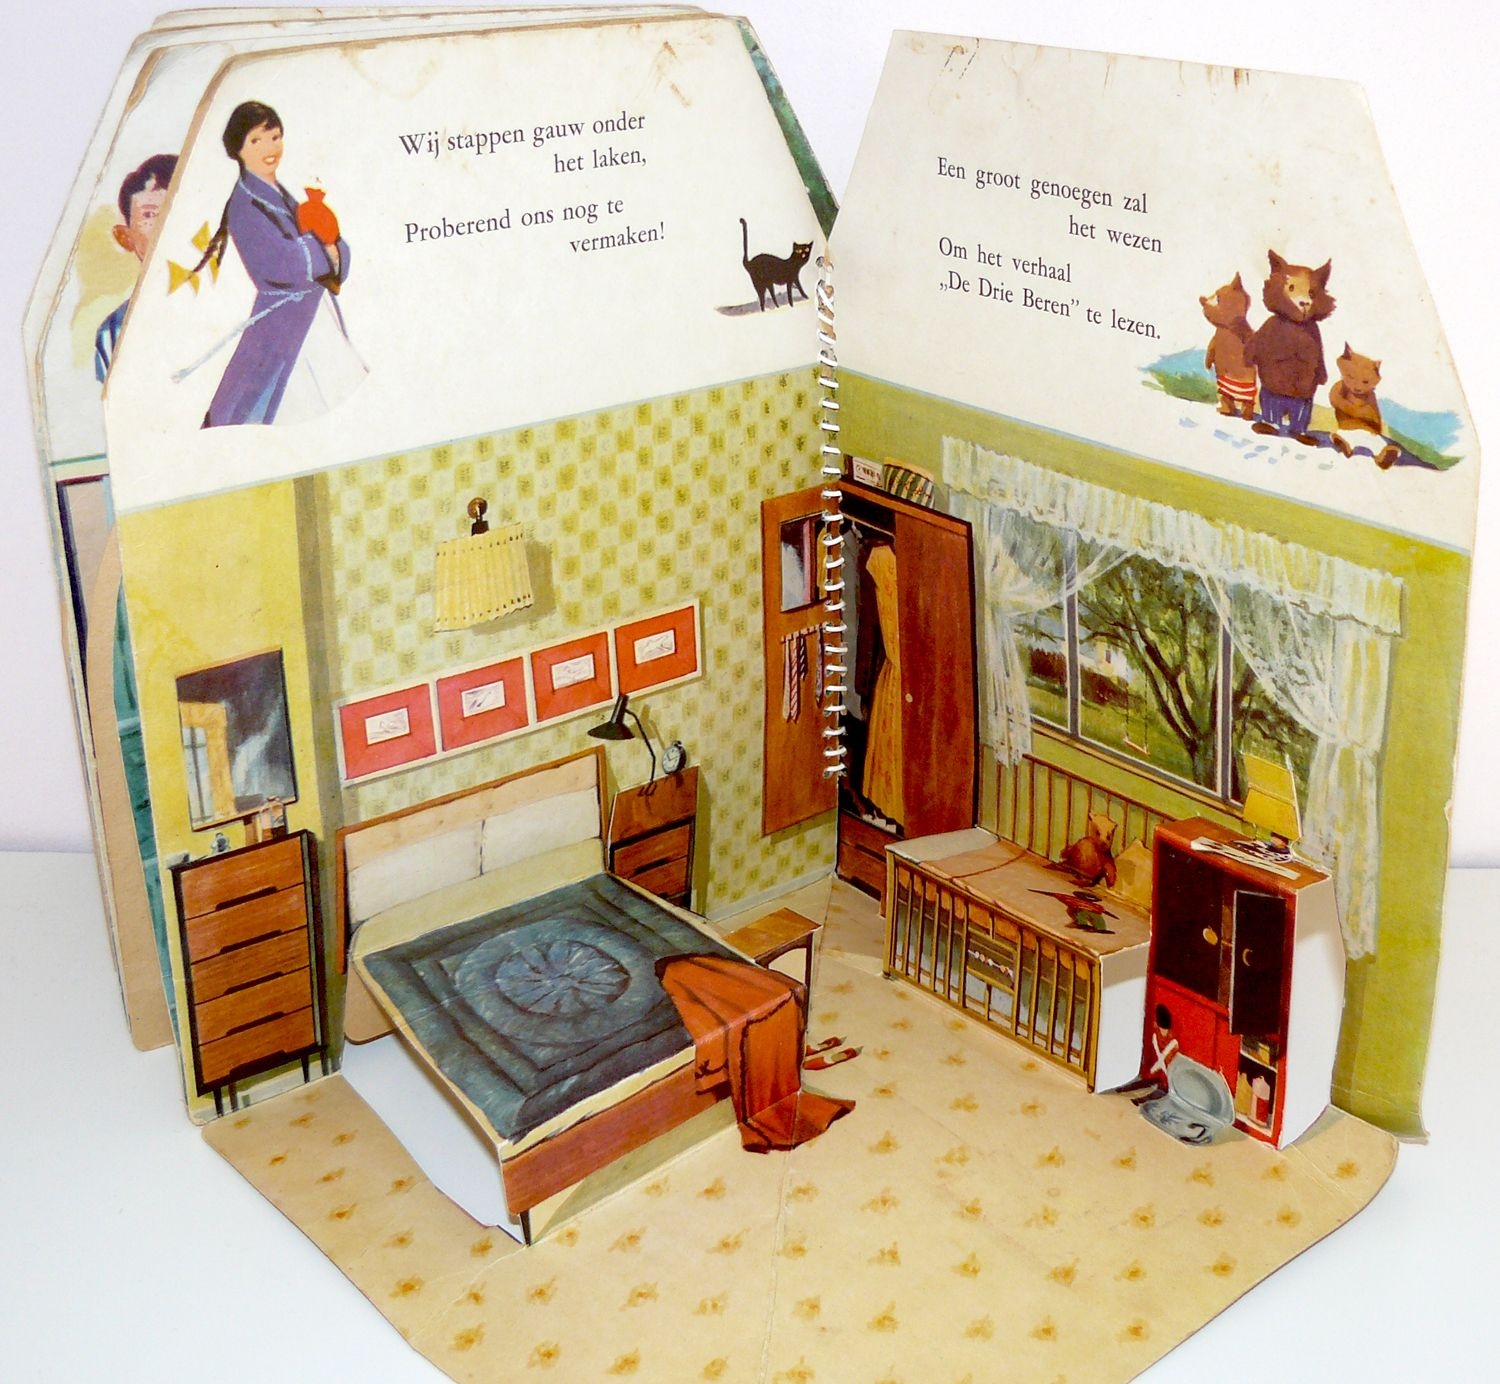 Shoebox Bedroom Dutch Pop Up Dollhouse Book From The 1950s Bedroom Christmas